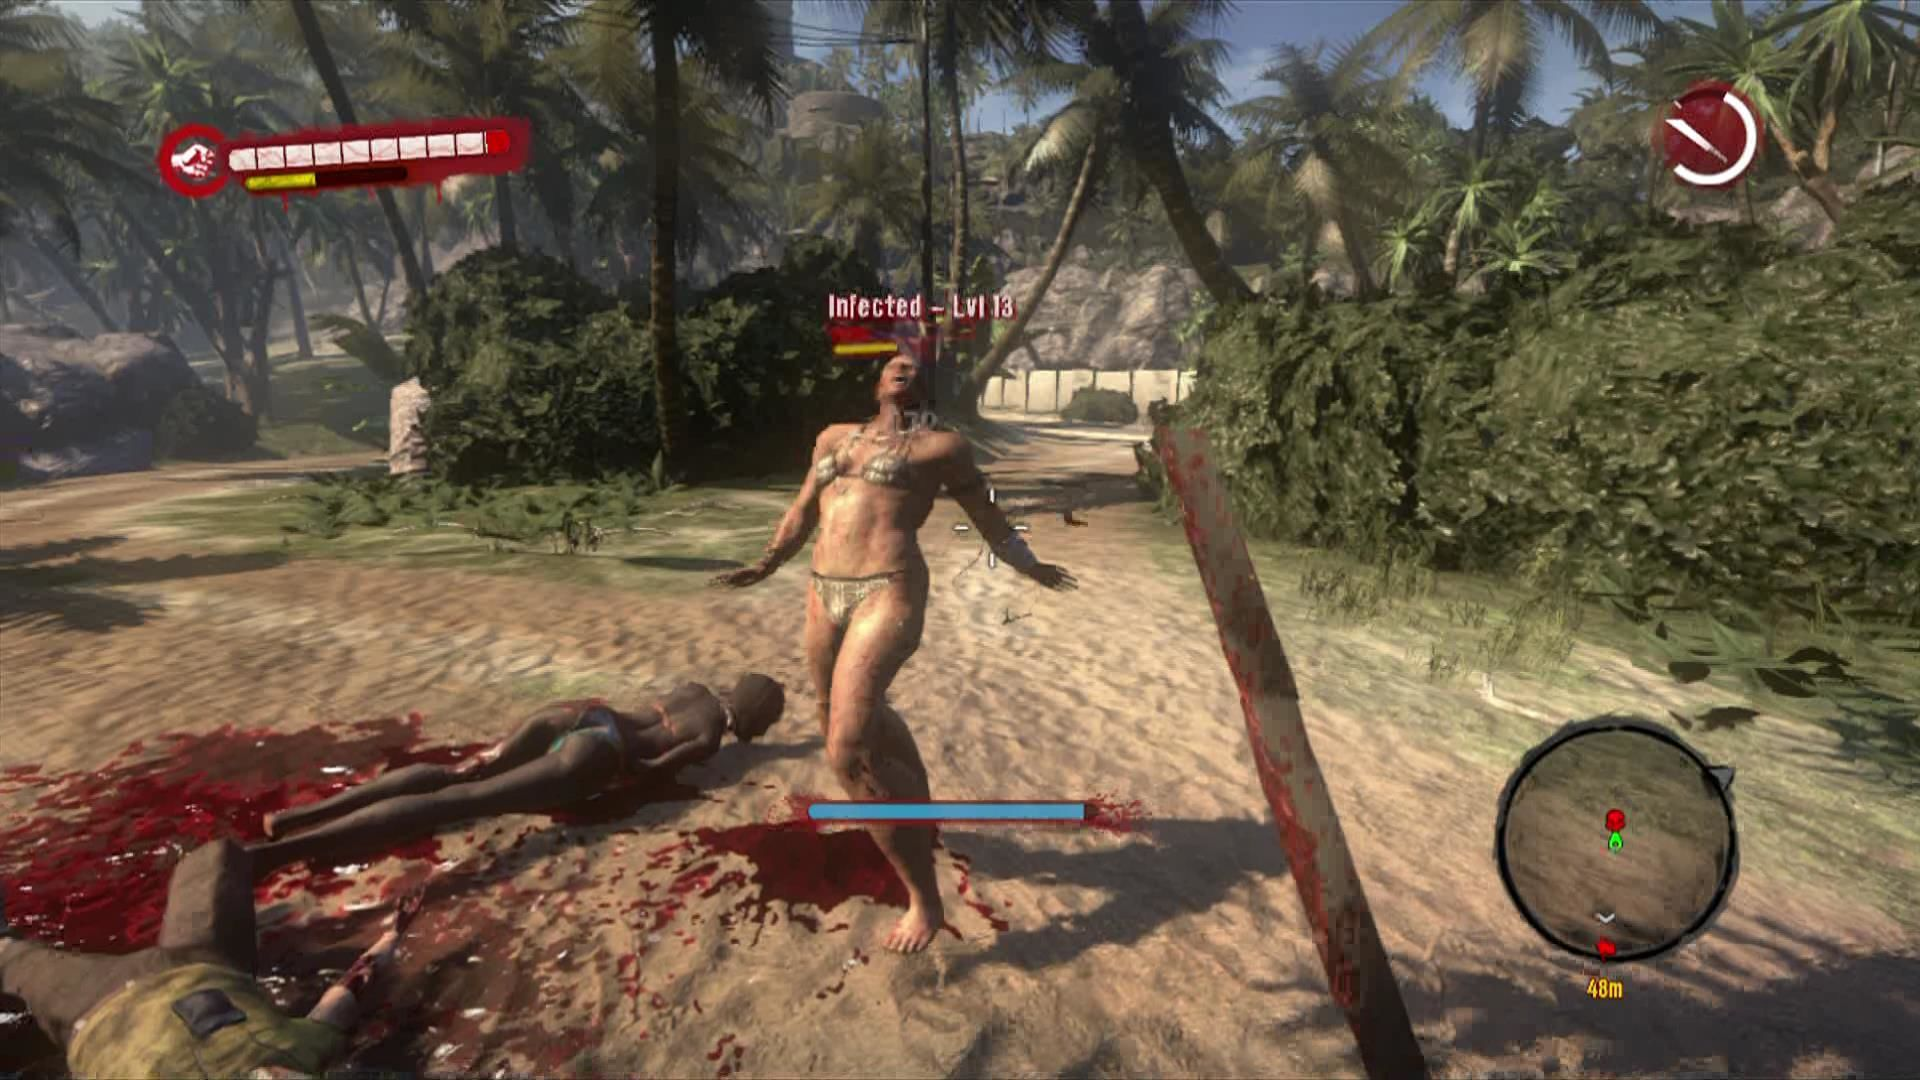 Dead Island Xbox 360 Don't get fooled by zombies in bikinis, they will attack.